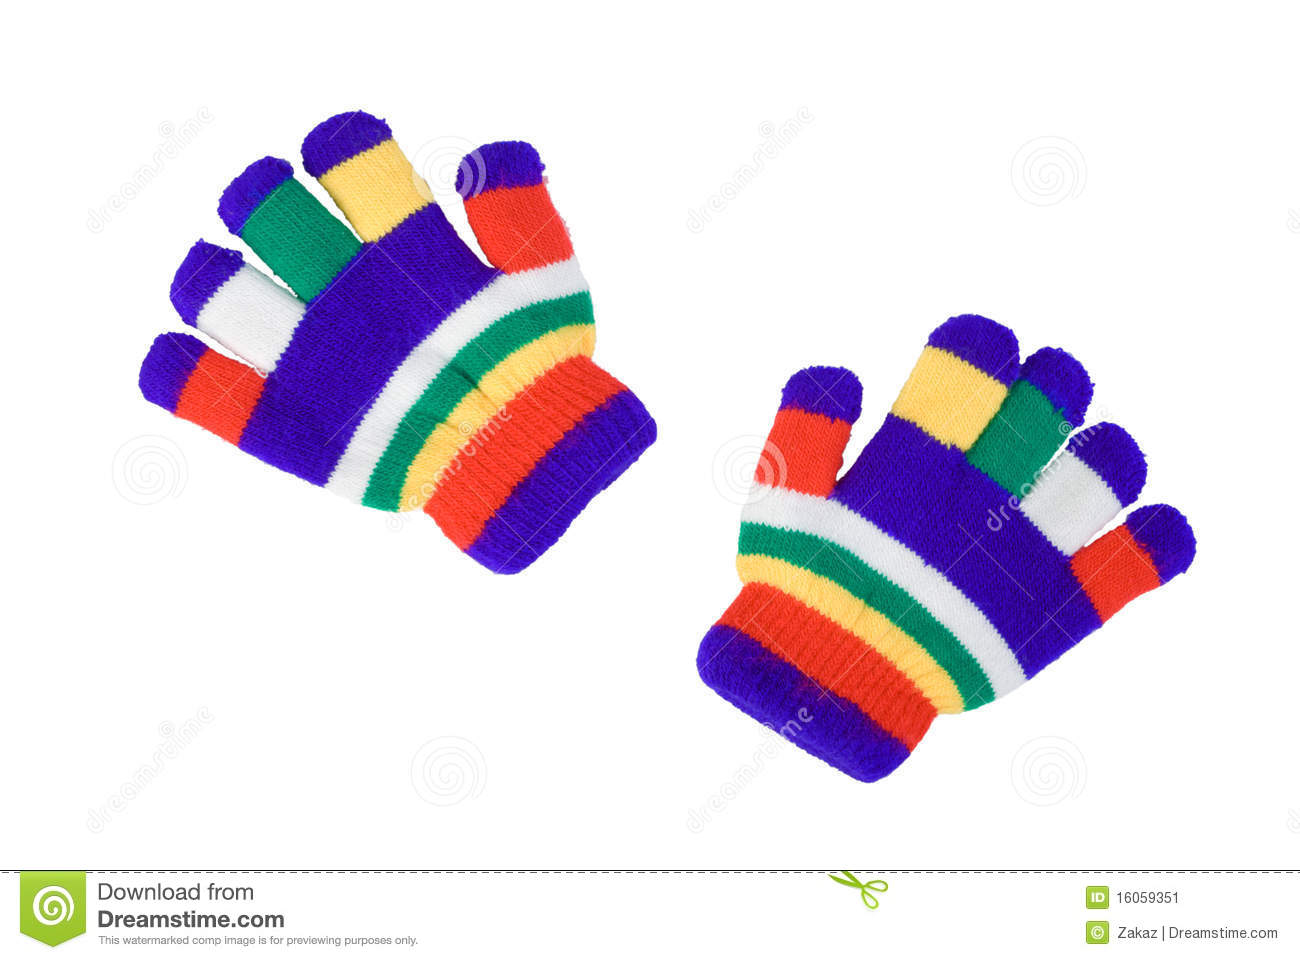 Winter glove clipart